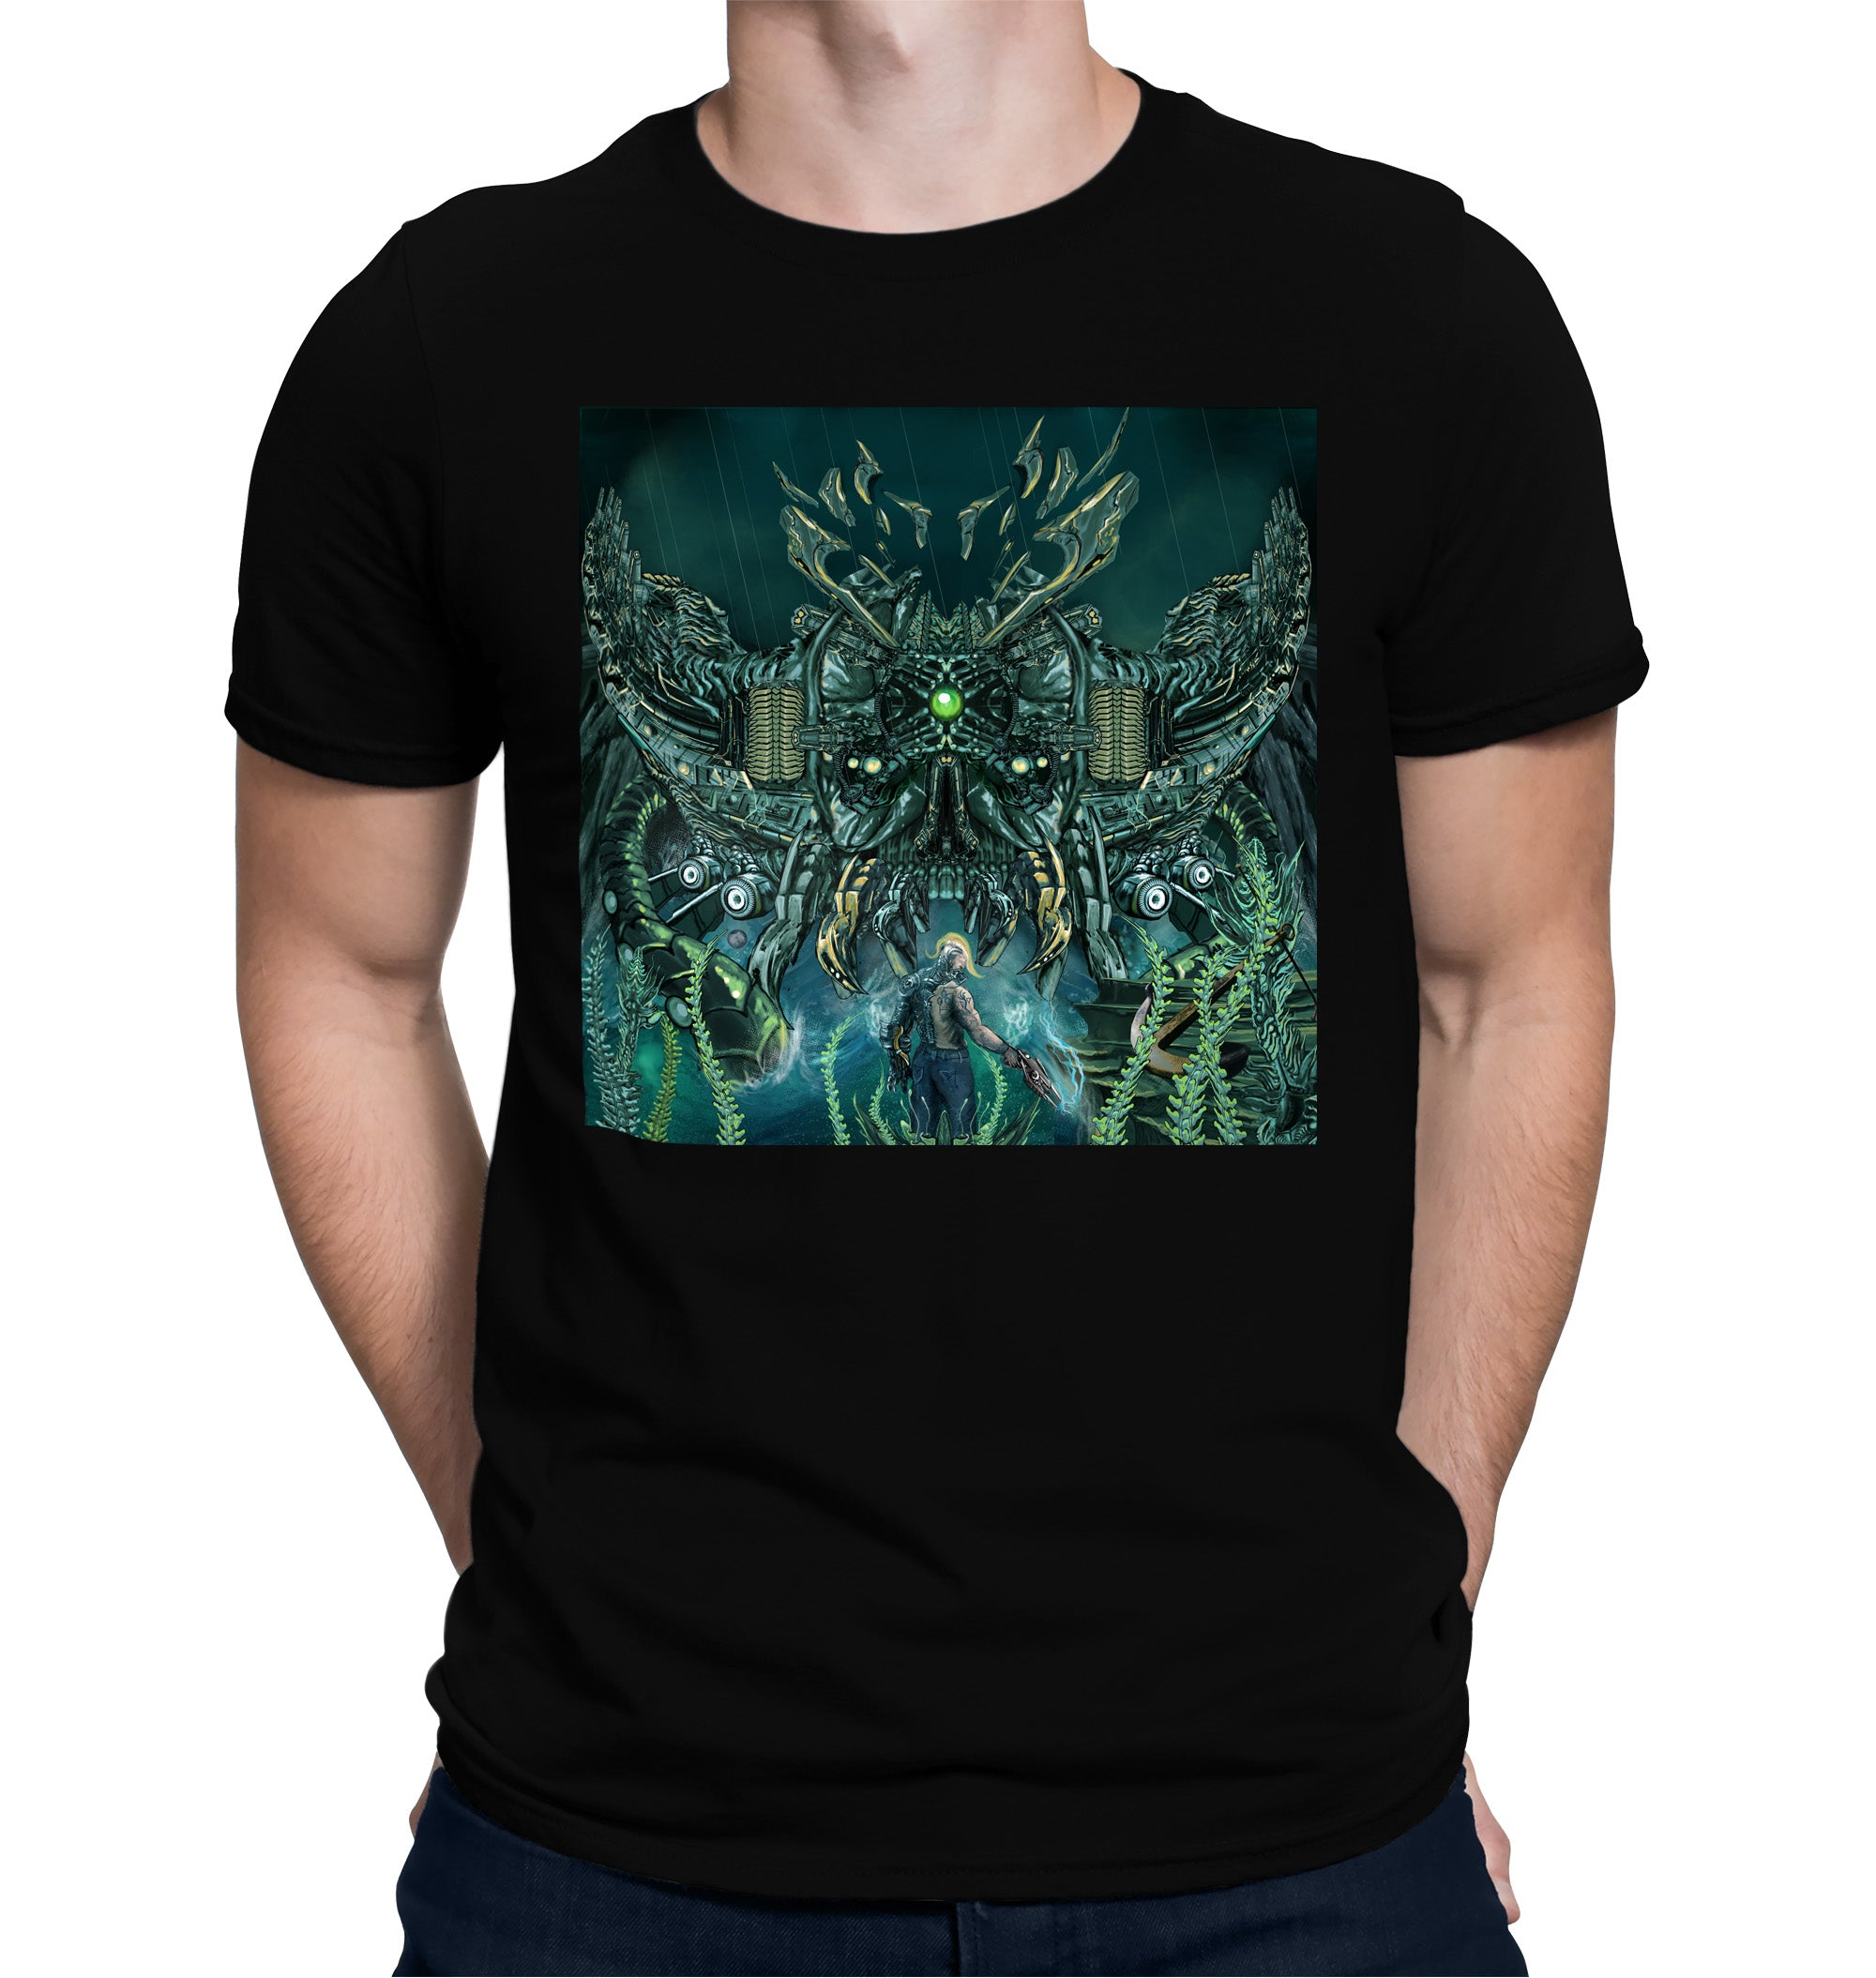 Underwater Skull Robot Battle T-Shirt